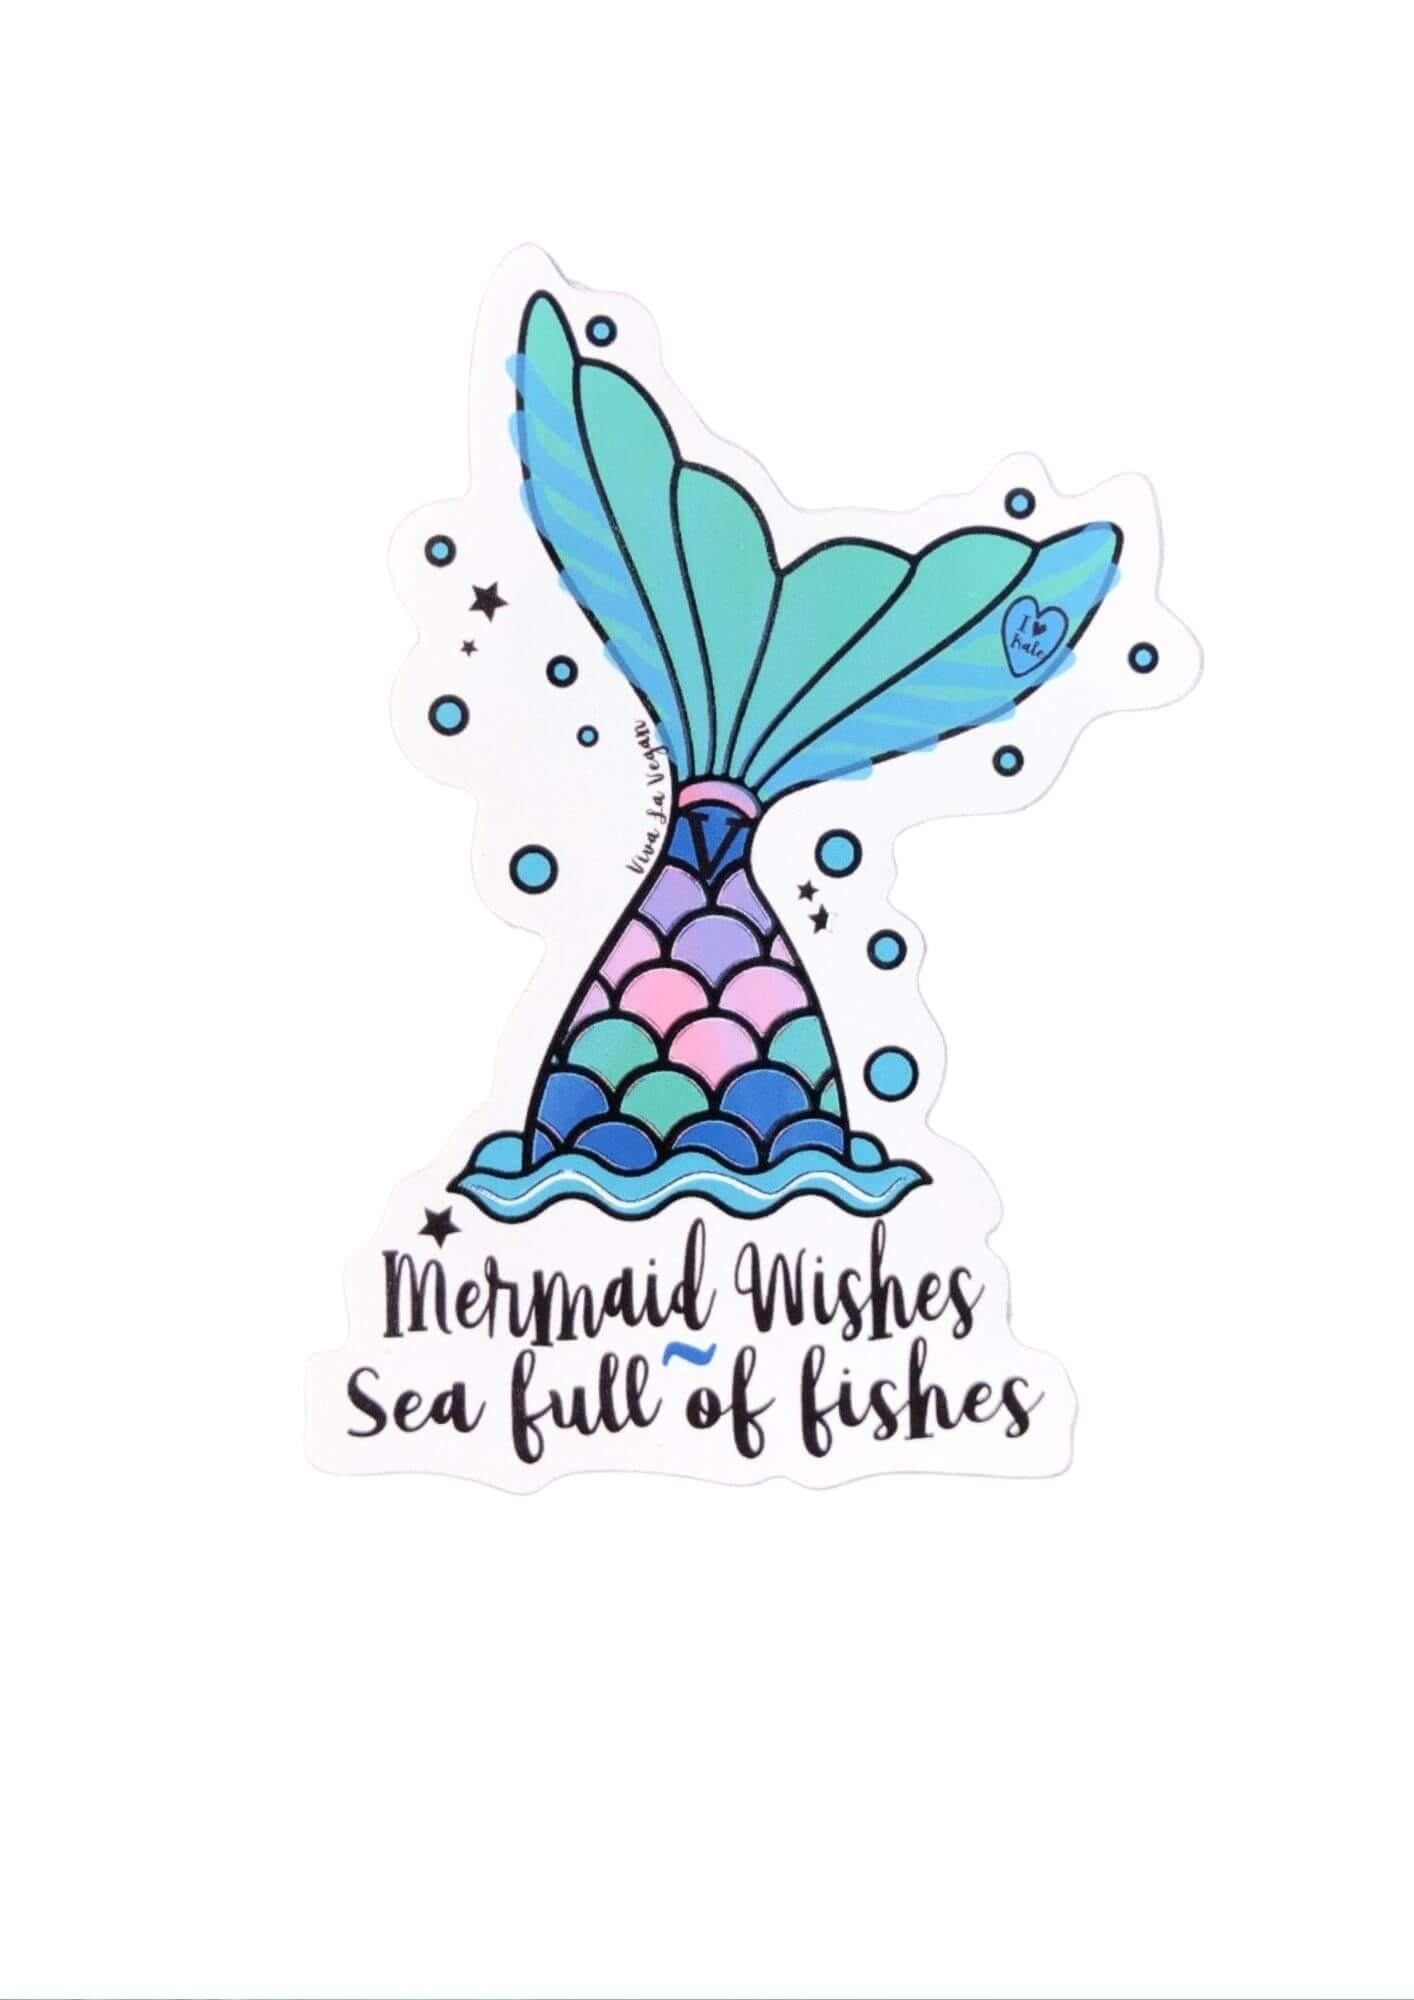 Mermaid Wishes A Sea Full Of Fishes Sticker by eco ethical brand Viva La Vegan